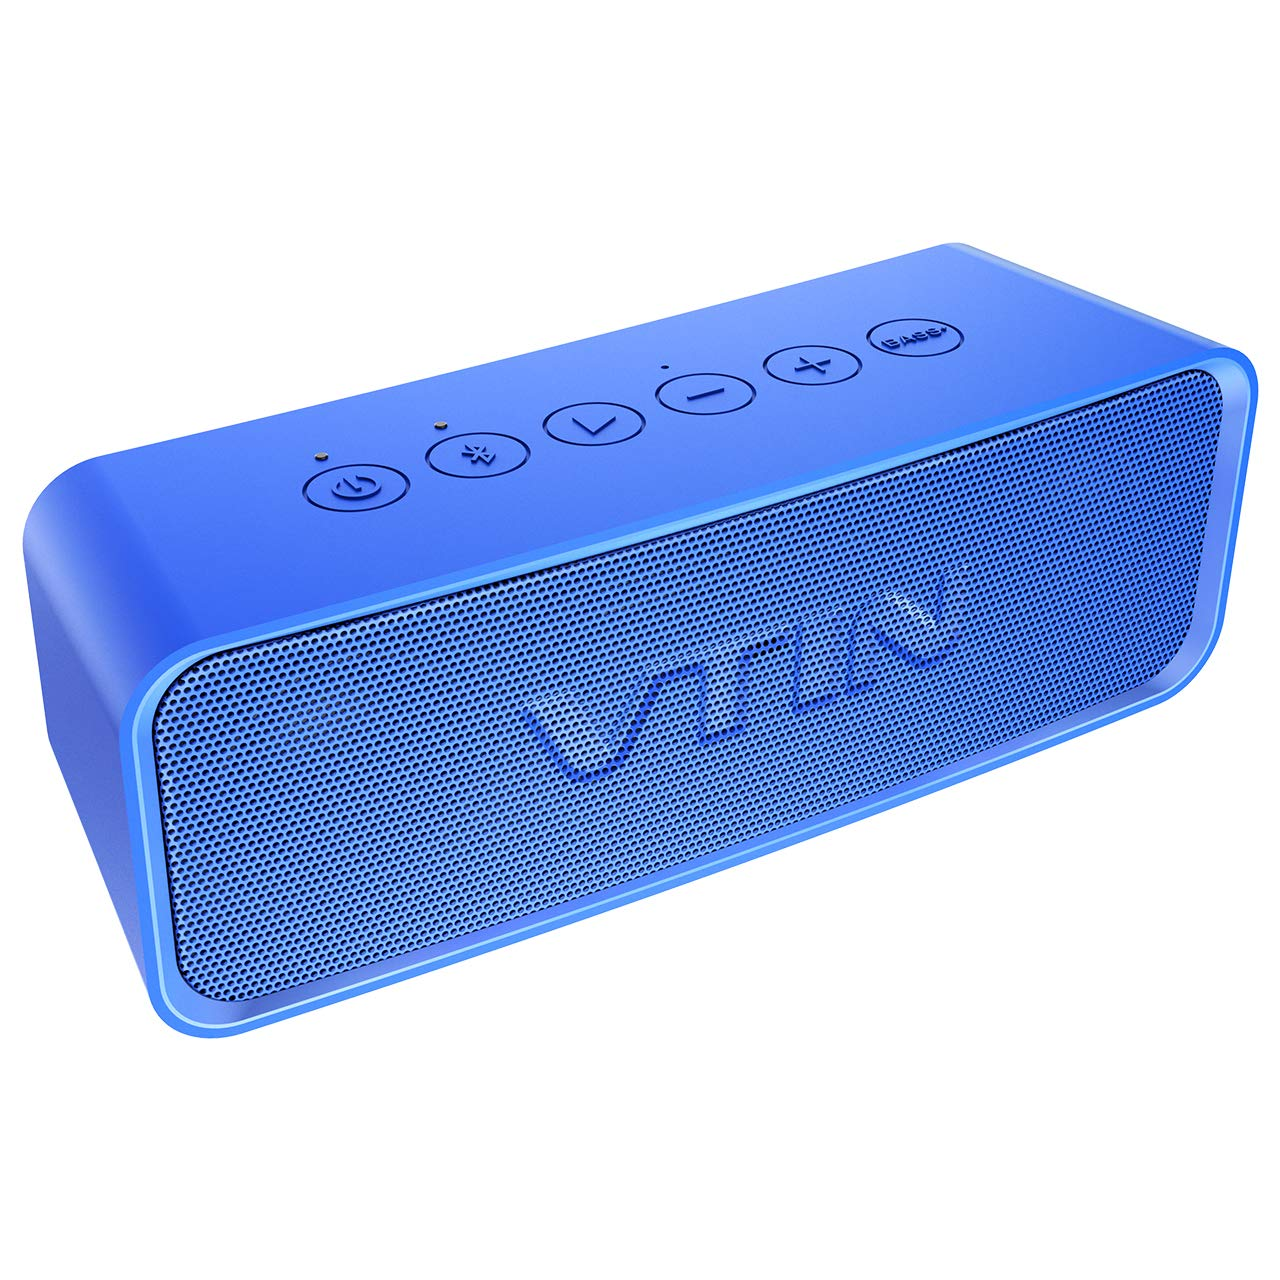 VTIN Bluetooth Speaker, Portable Outdoor Speaker with Exclusive Bold Bass+, Superior Sound, IPX6 Waterproof, 1000 Min Playtime, Bulit-in Mic, Wireless Speakers for Beach/Party/Dance/Bicycle-Blue